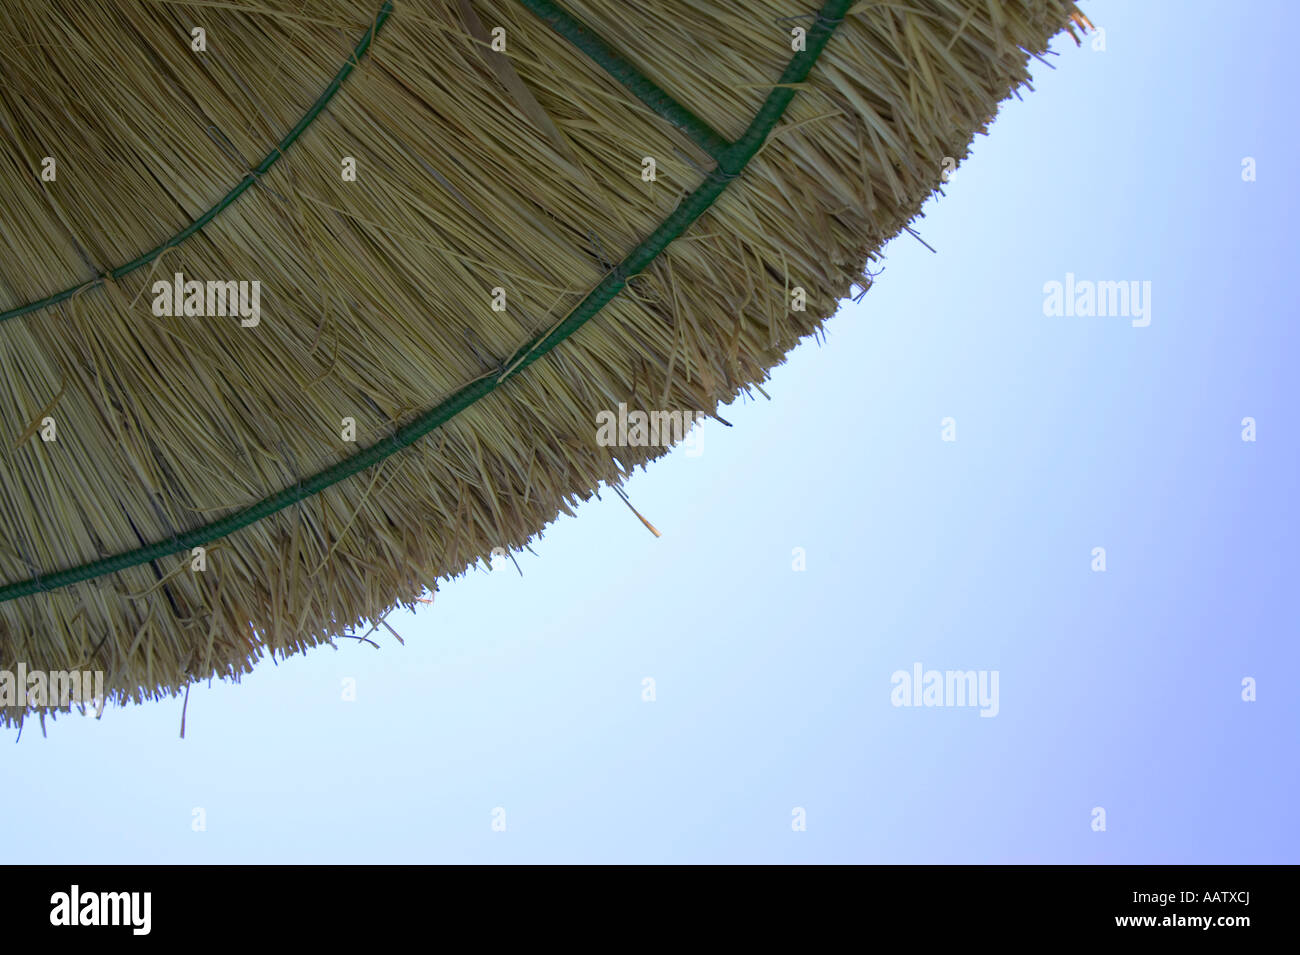 straw parasol protecting against harmful UV rays from the sun with blue cloudless sky - Stock Image